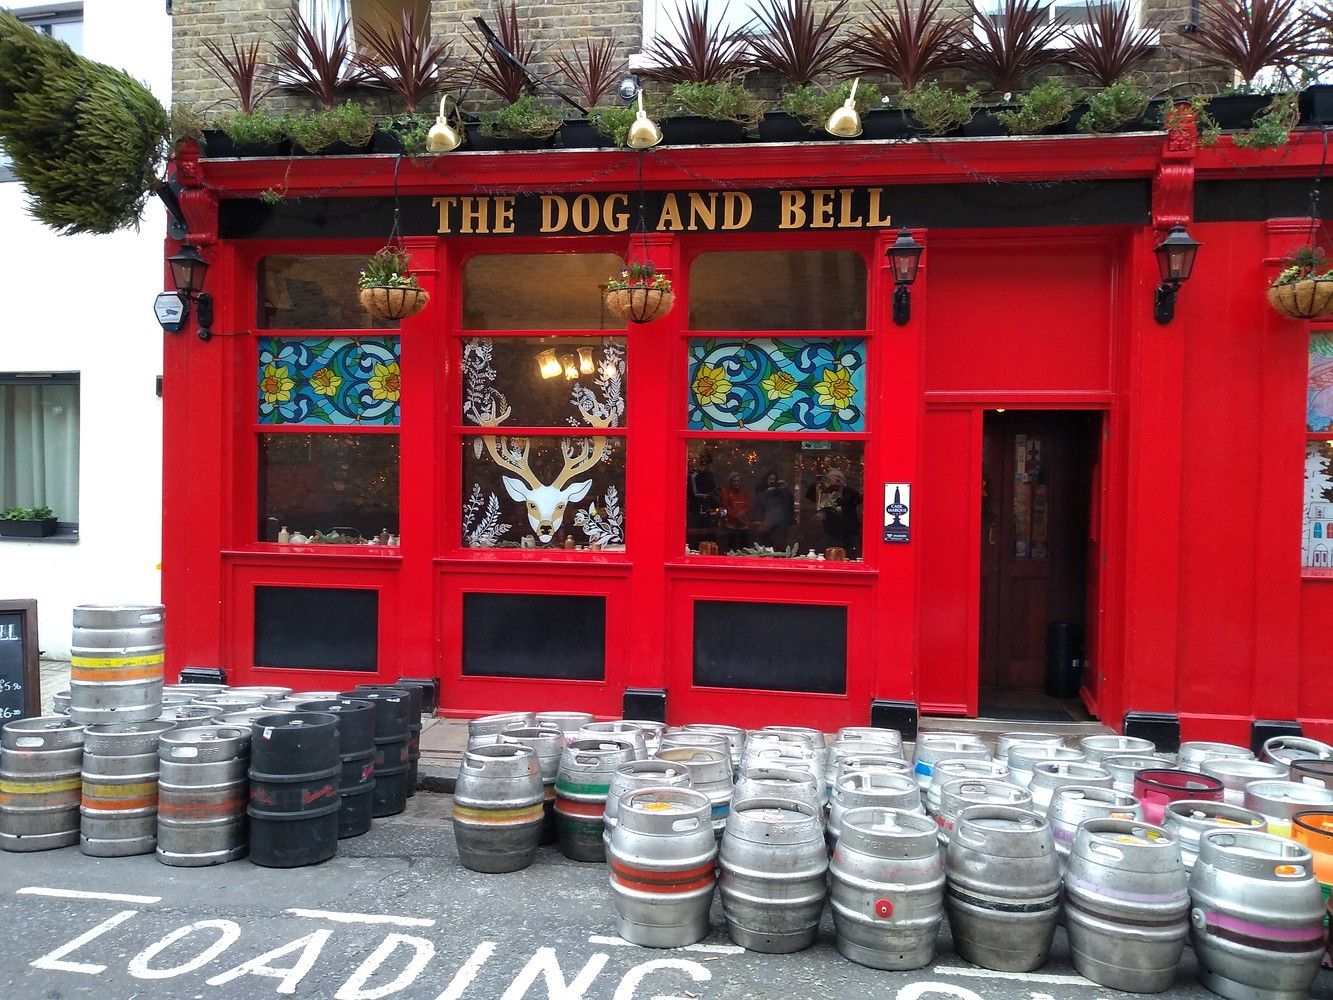 The Dog and Bell Looks like they had a busy Christmas